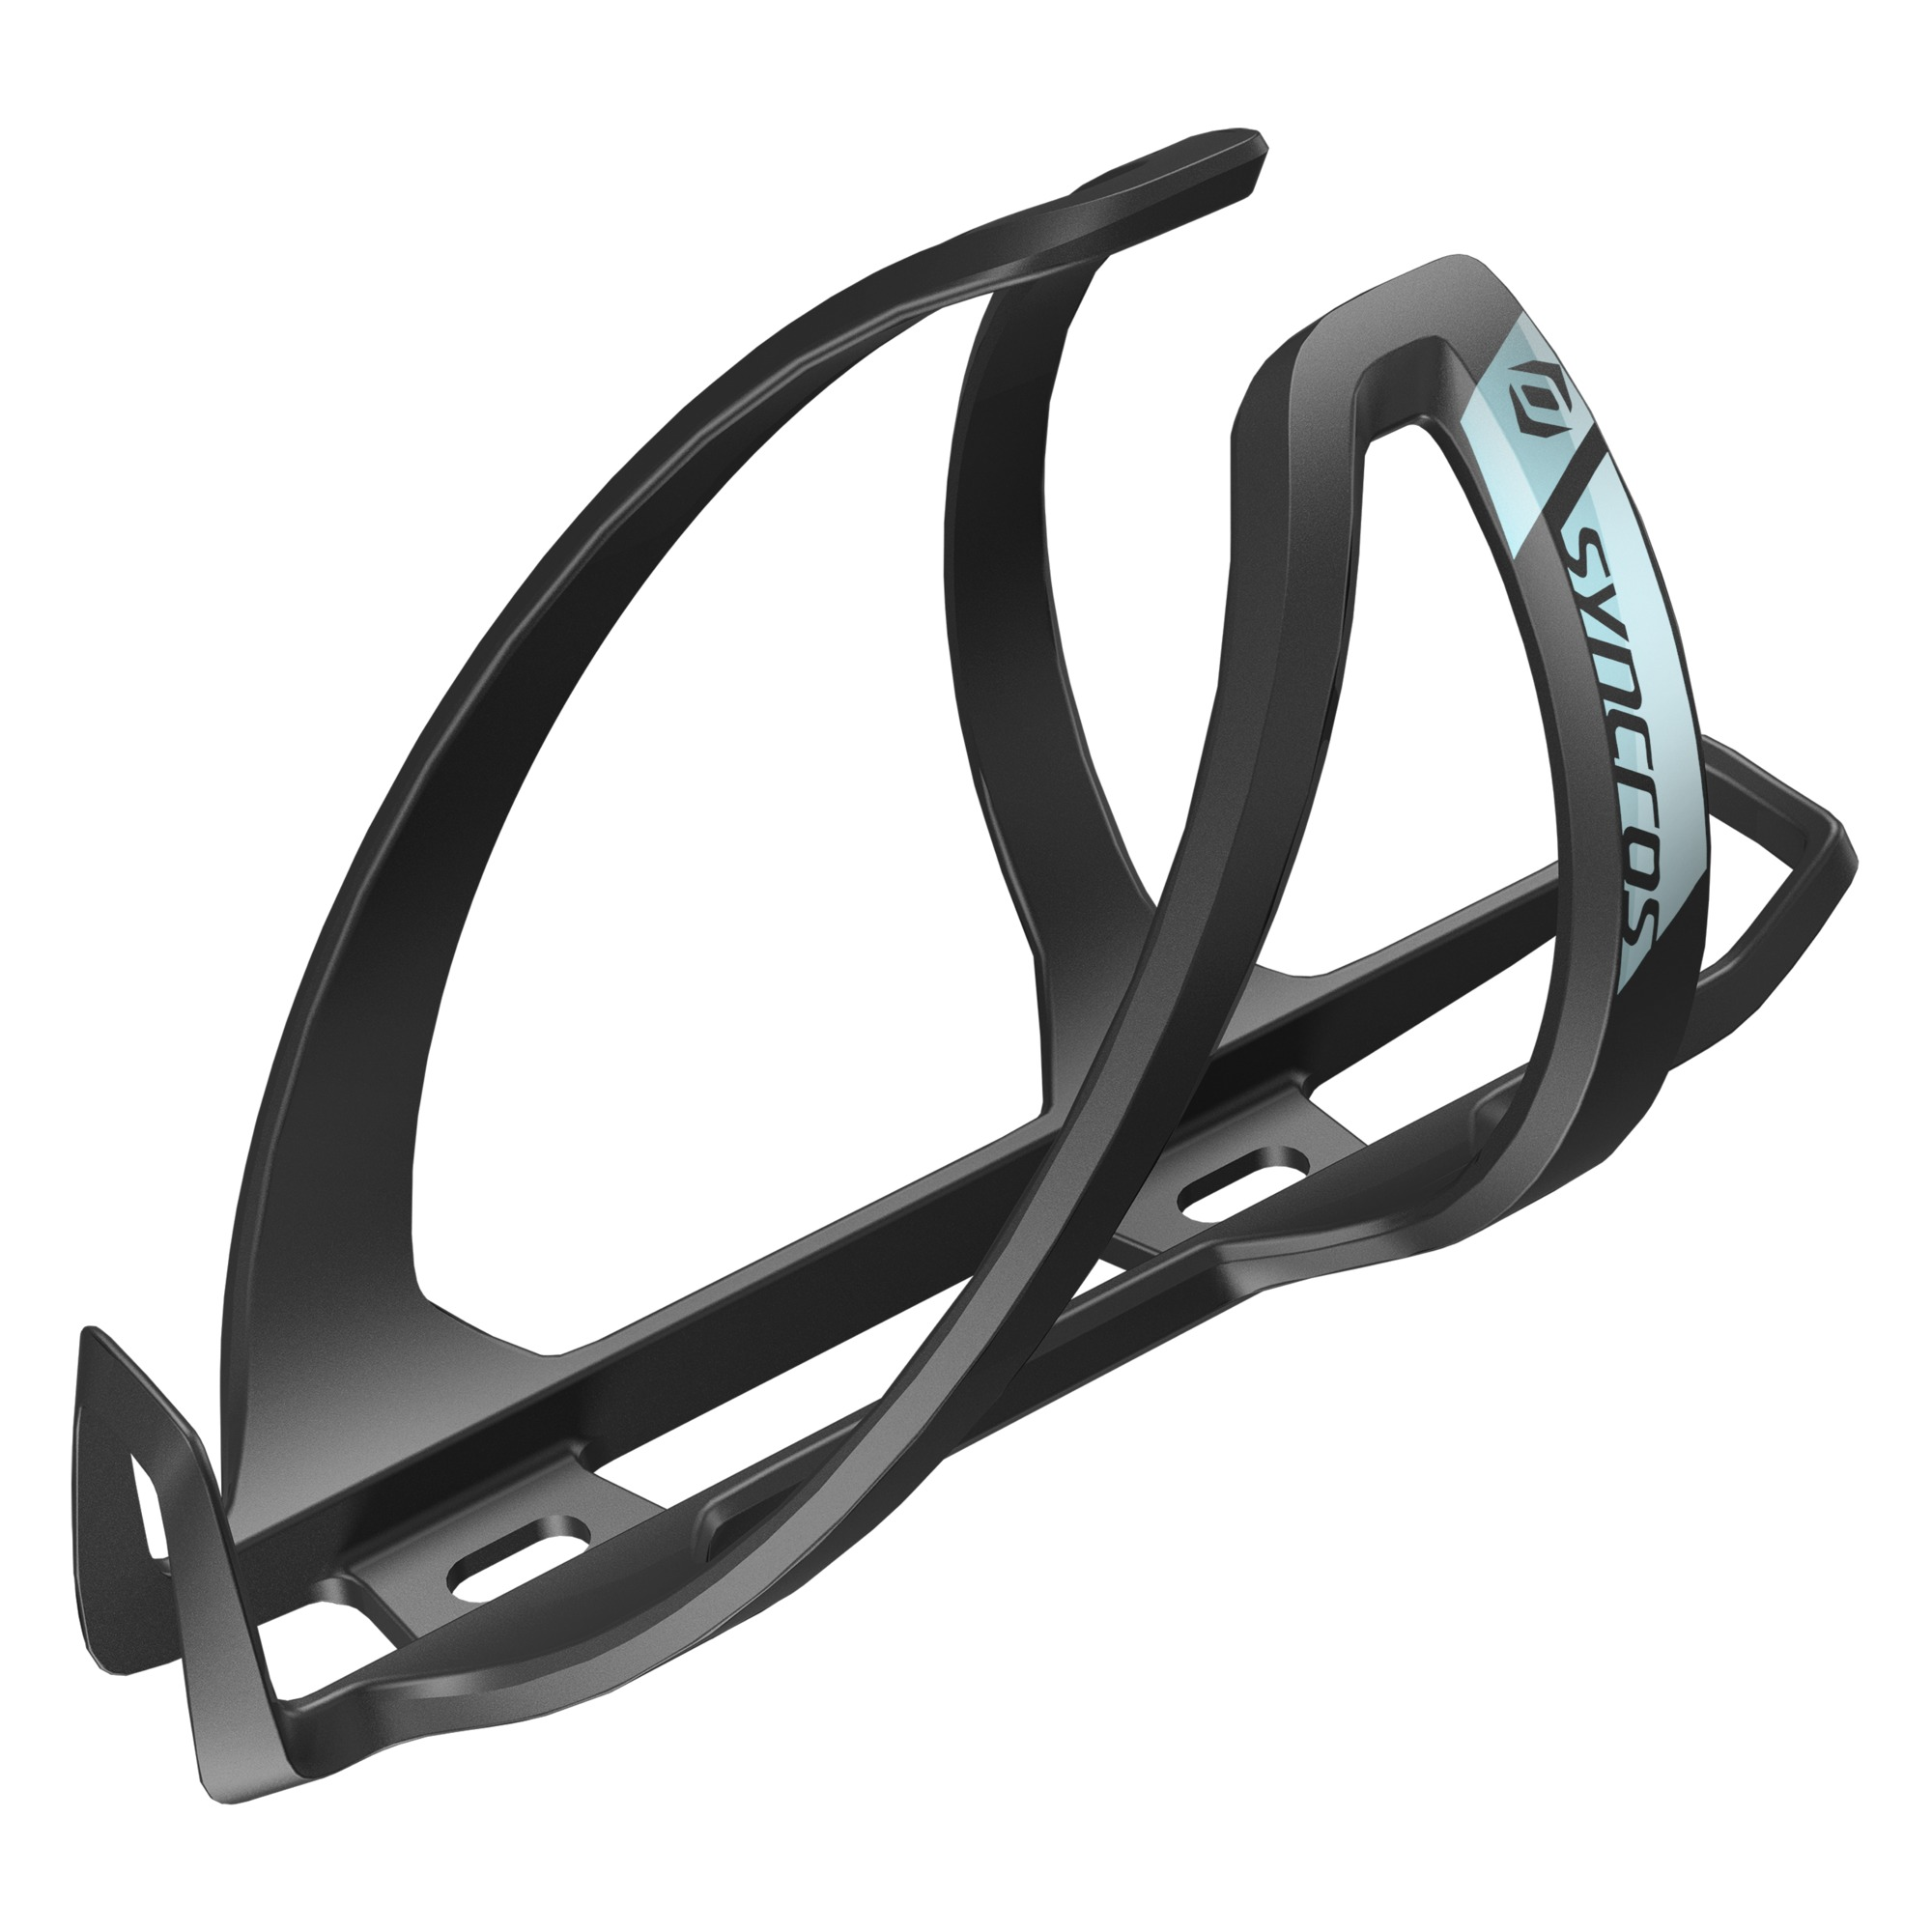 SYNCROS COUPE CAGE 2.0 BOTTLE CAGE Black / surf spray blue